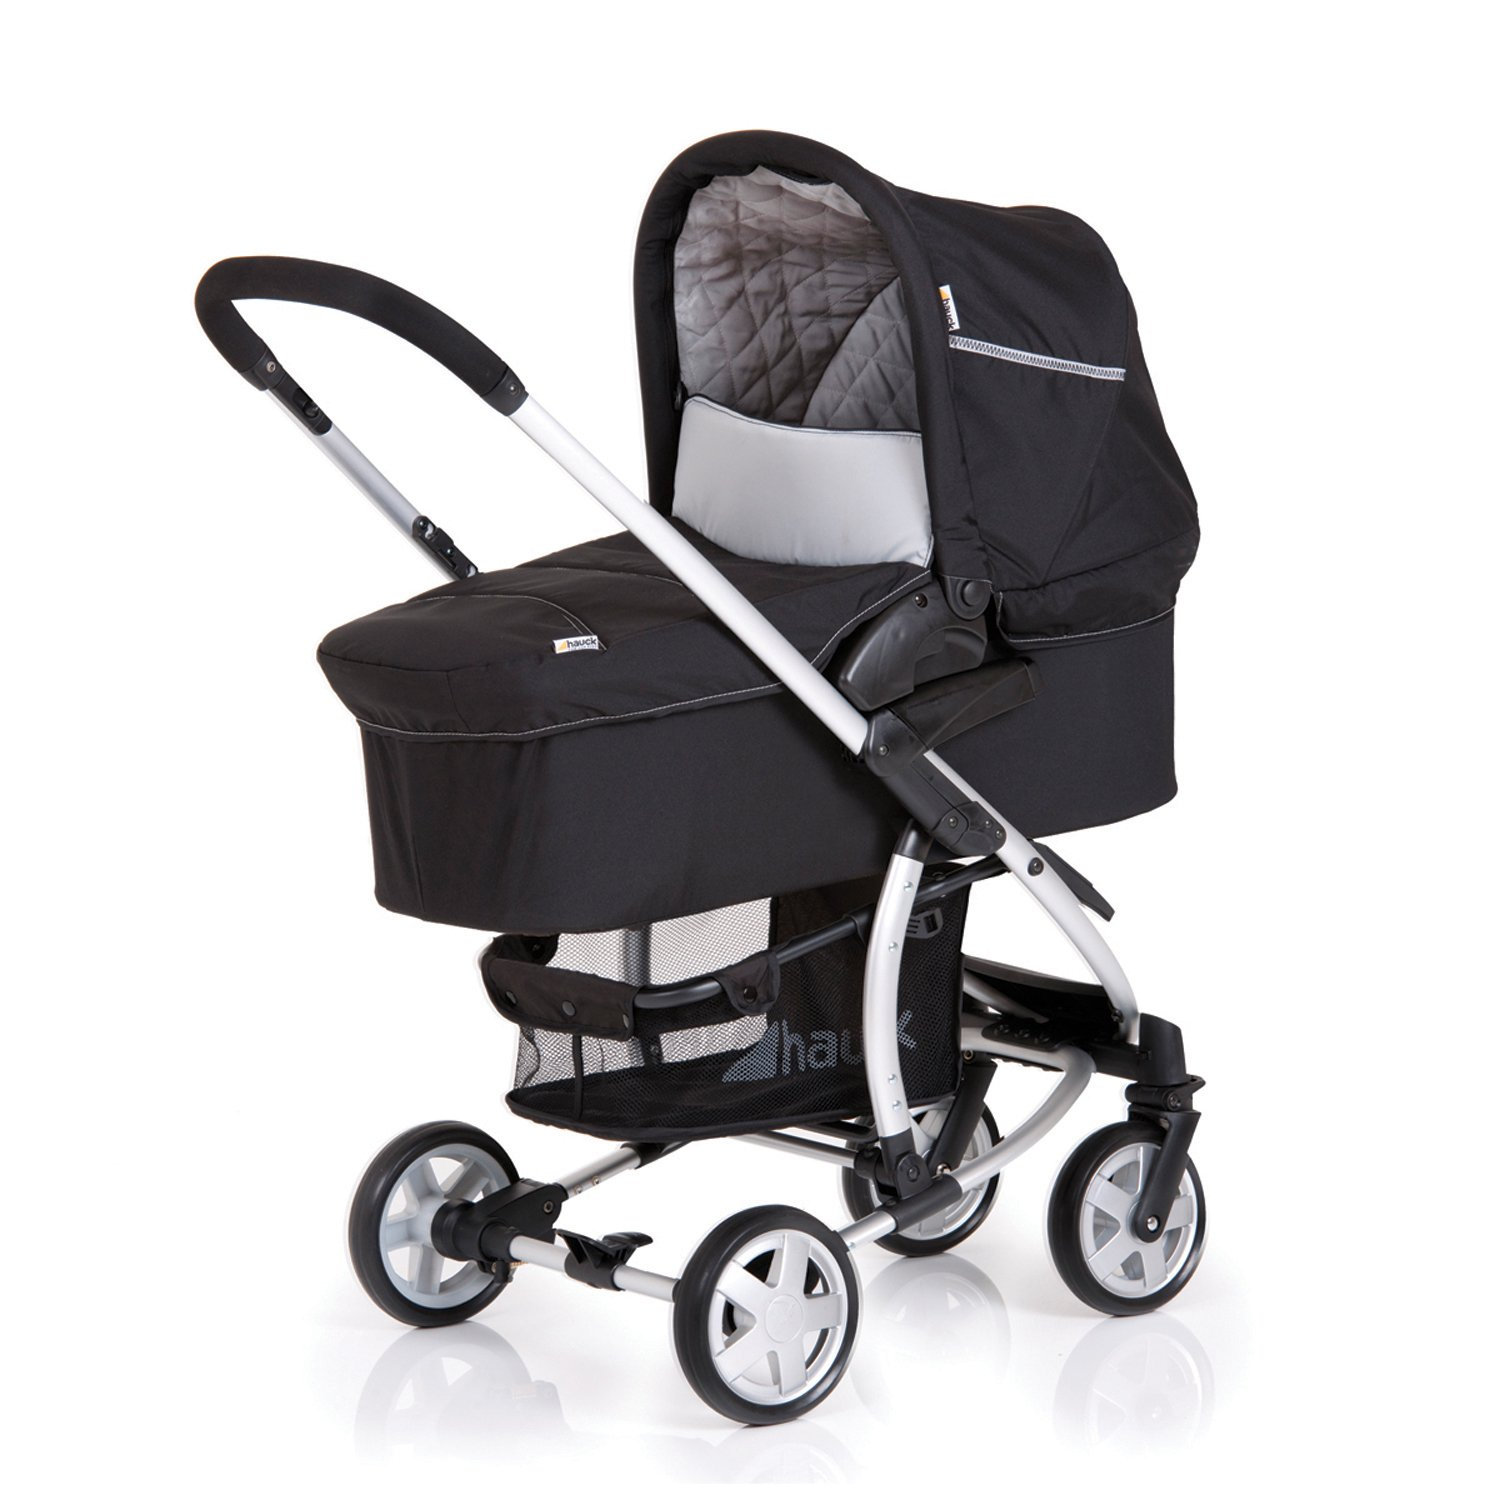 Amazon Hauck Malibu All in e Child Carrier Set Baby stroller and bassinet with car seat adaptor Black Discontinued by Manufacturer Infant Car